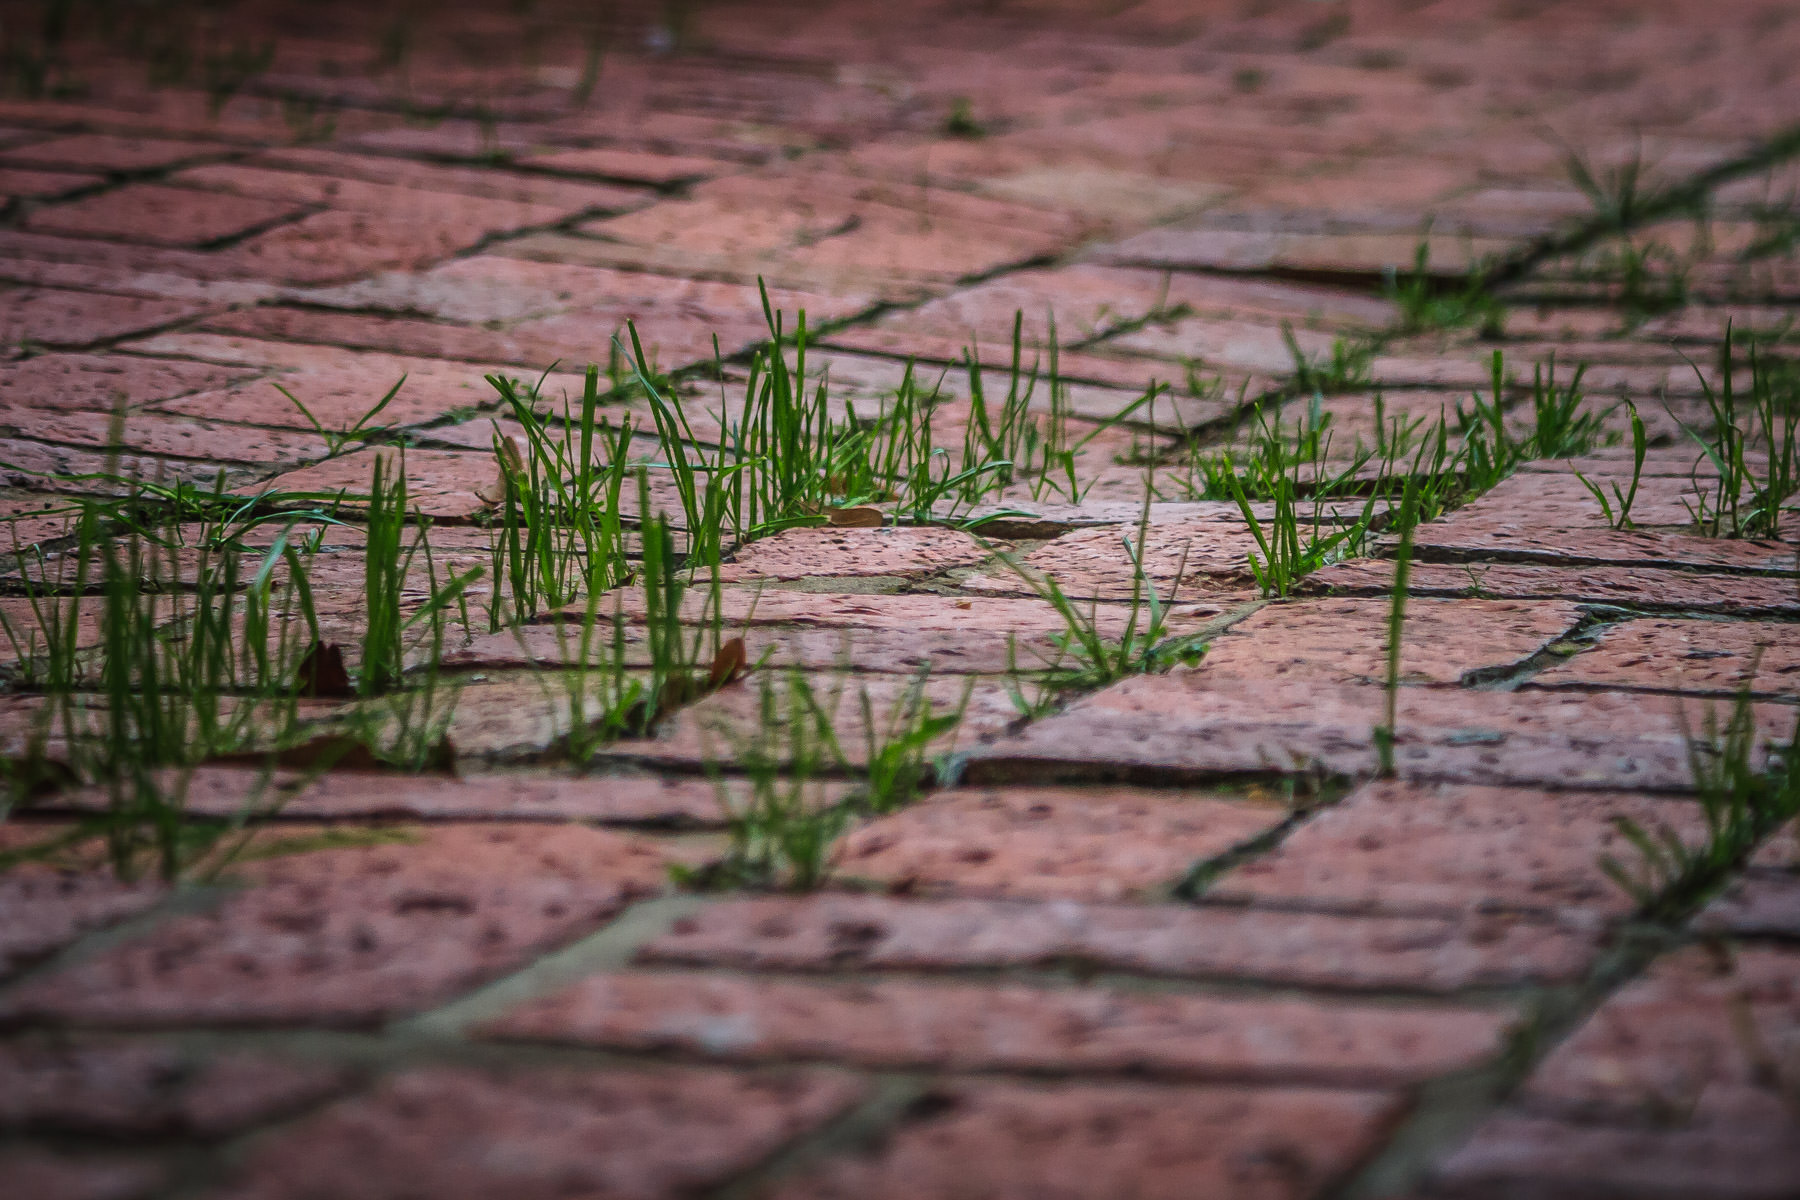 Grass growing in the spaces between bricks, spotted on the campus of Tyler Junior College, Tyler, Texas.